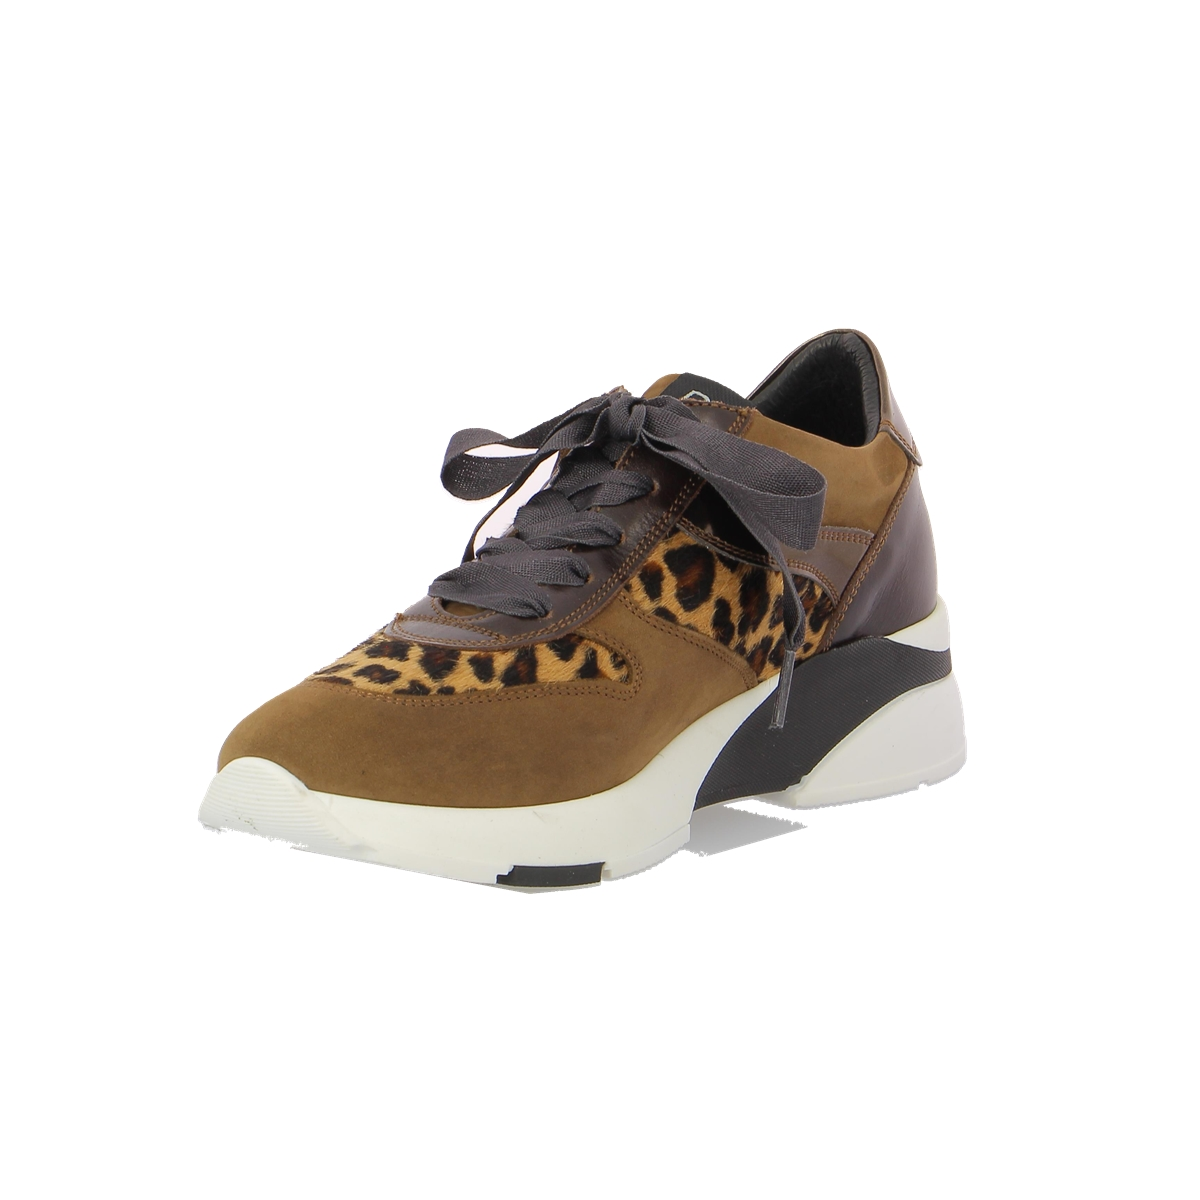 Dlsport Sneakers taupe